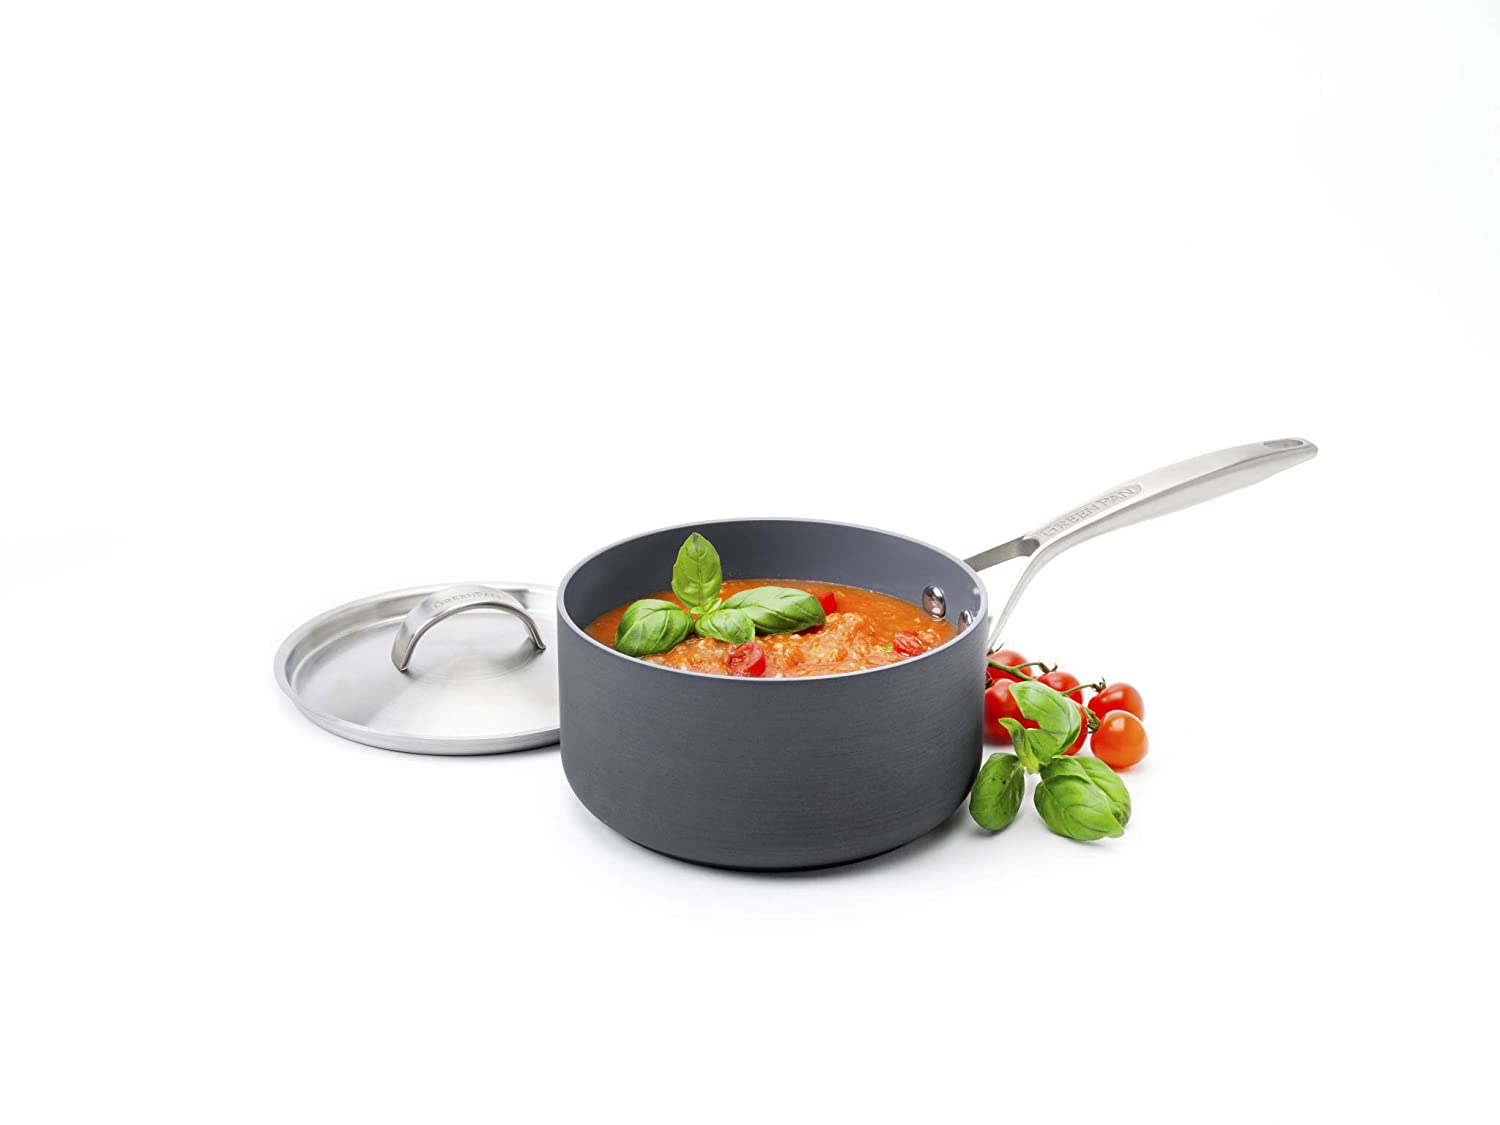 GreenPan Paris 3 Quart Non-Stick Dishwasher Safe Ceramic Covered Sauce Pan